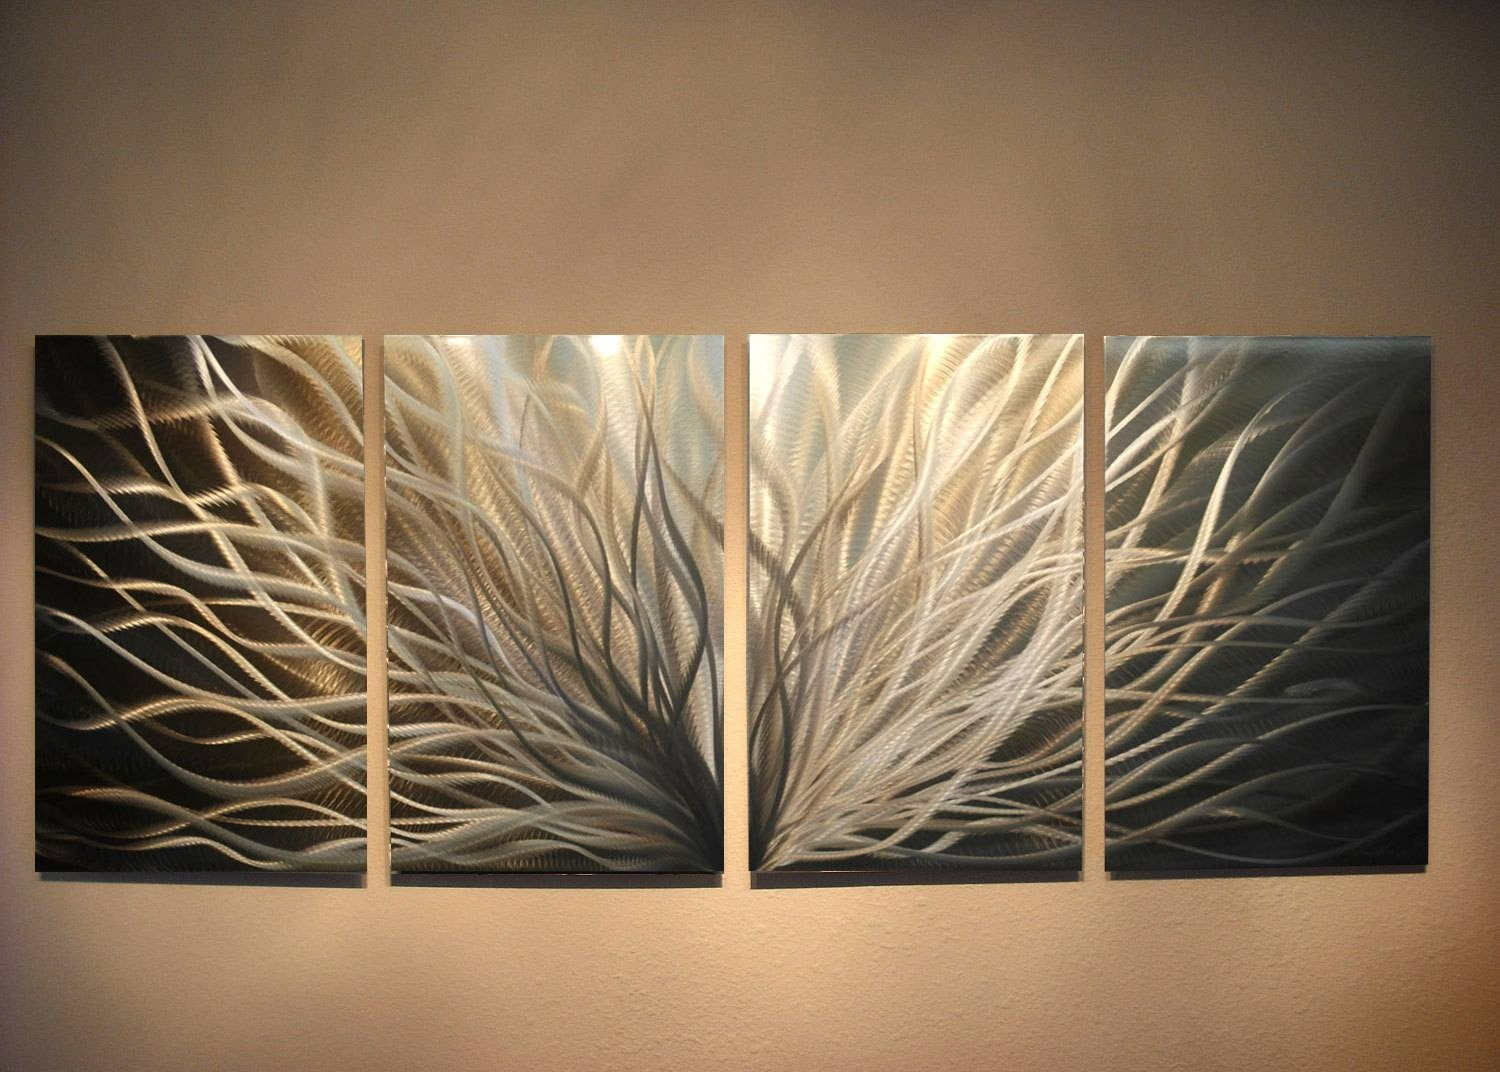 Metal Art Wall Art Decor Aluminum Abstract Contemporary Modern With Regard To 2018 Silver And Gold Wall Art (View 3 of 15)